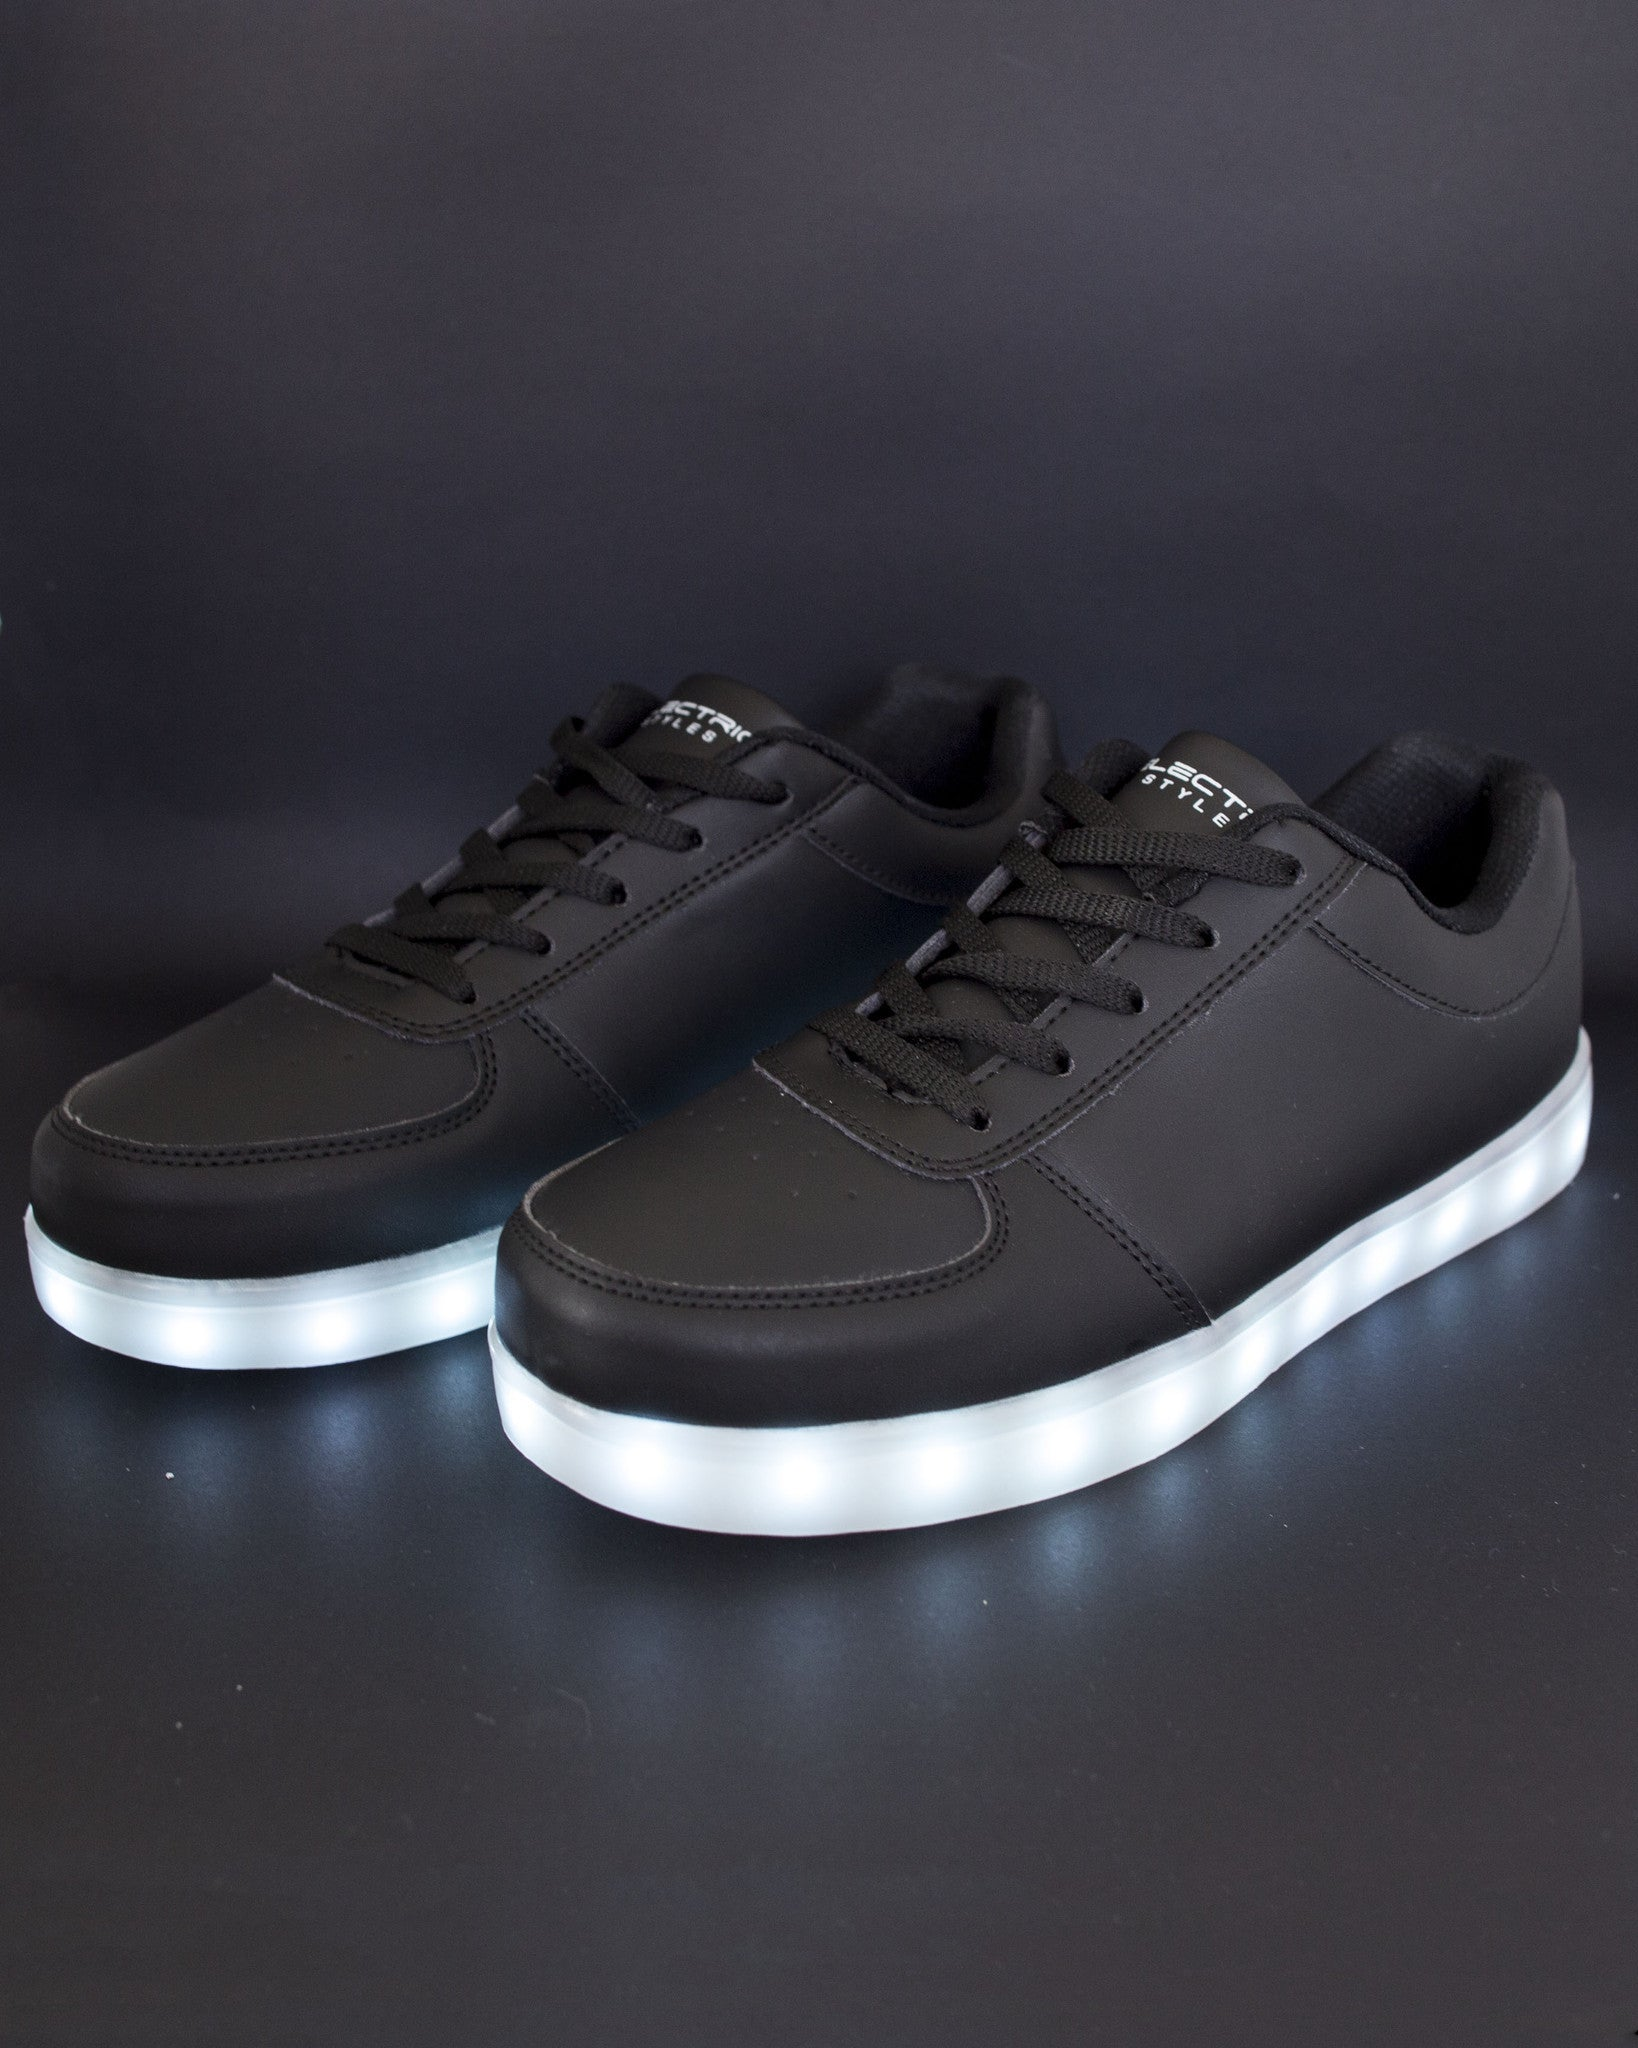 Light Up Shoes - All Black - Electric Styles | World's Number 1 Light Up Shoe Store - {product_type}} - Black / Men's 6 - 1